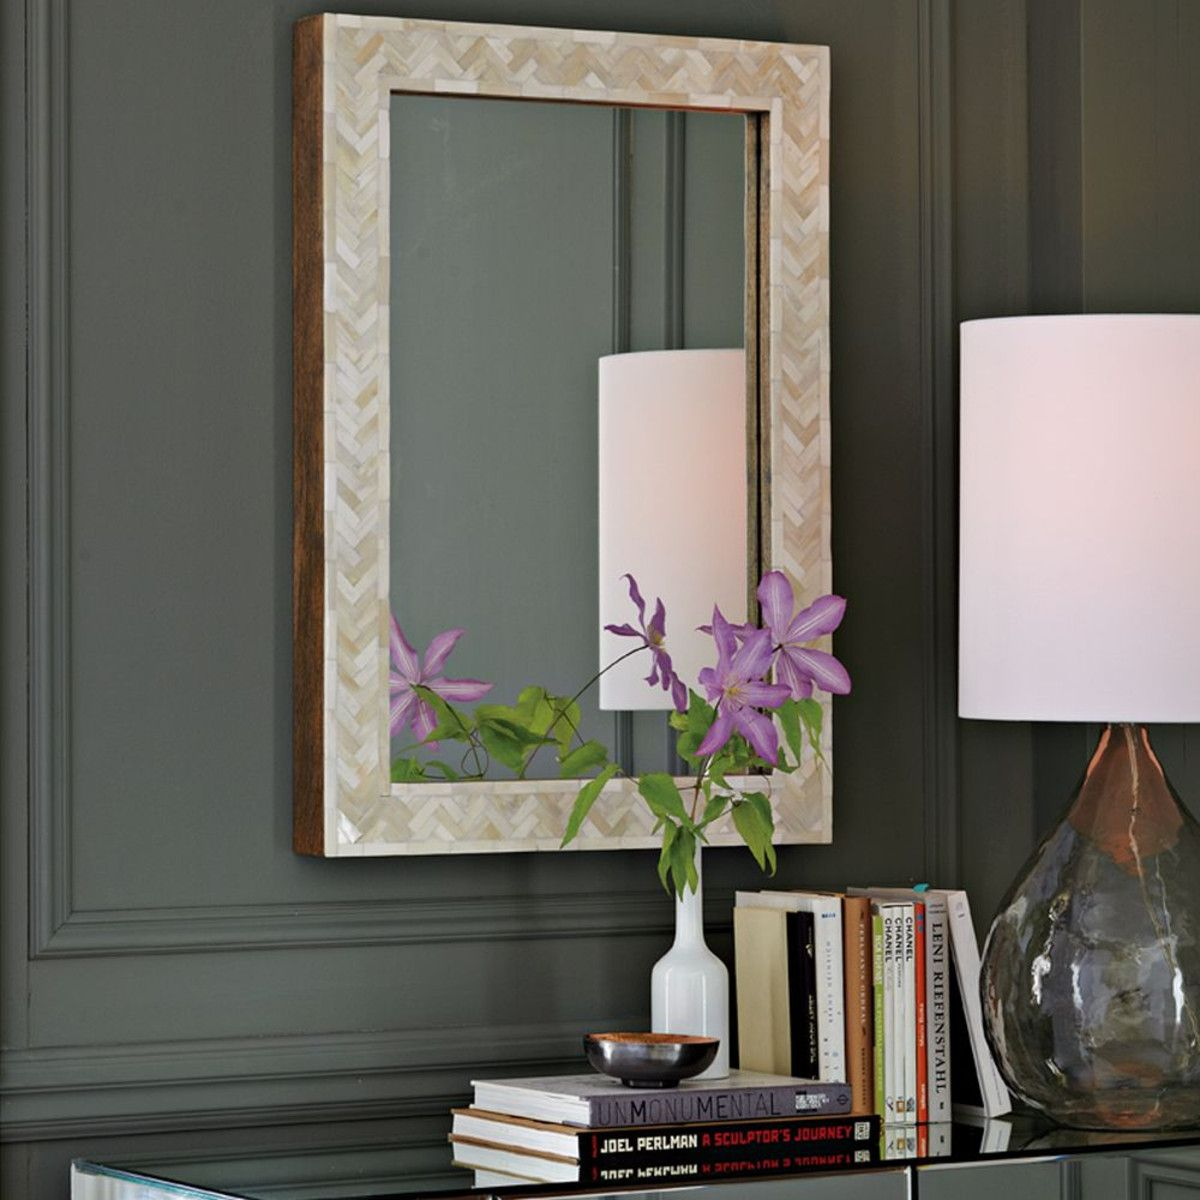 Parsons wall mirror bone inlay 86h 61w home ideas parsons wall mirror bone inlay 86h 61w amipublicfo Image collections